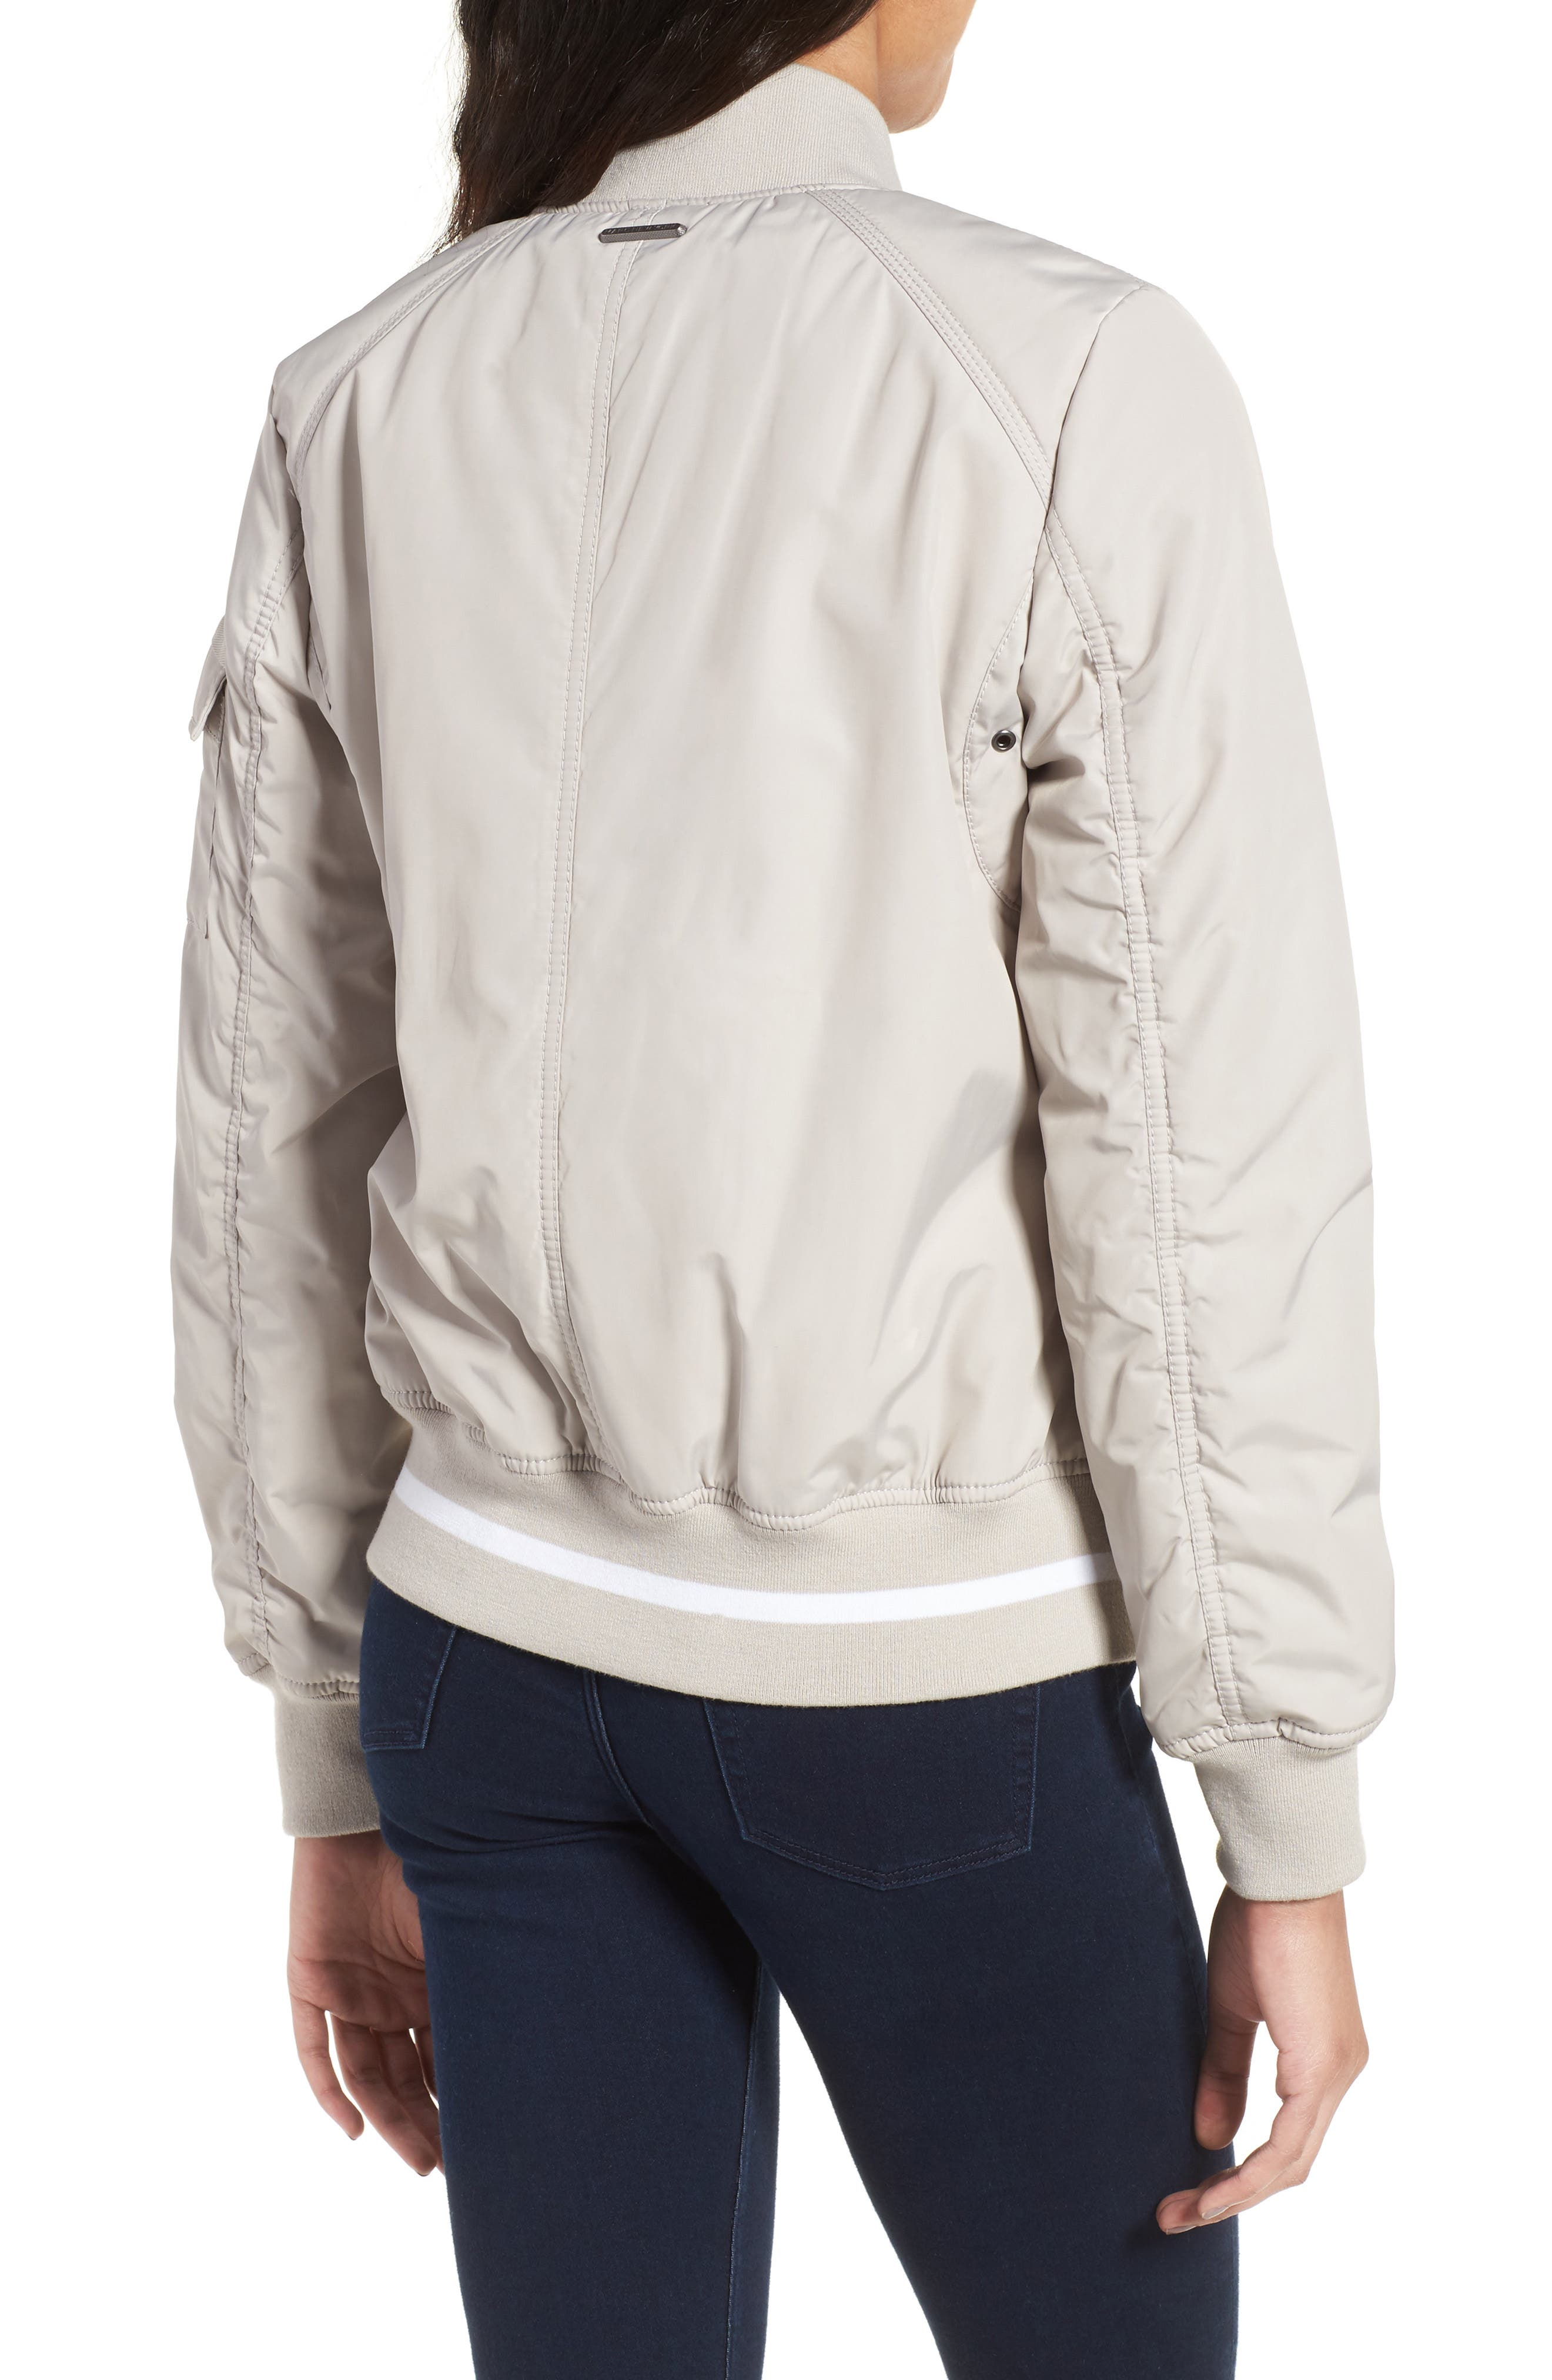 Foster Nylon Twill Bomber Jacket,                             Alternate thumbnail 7, color,